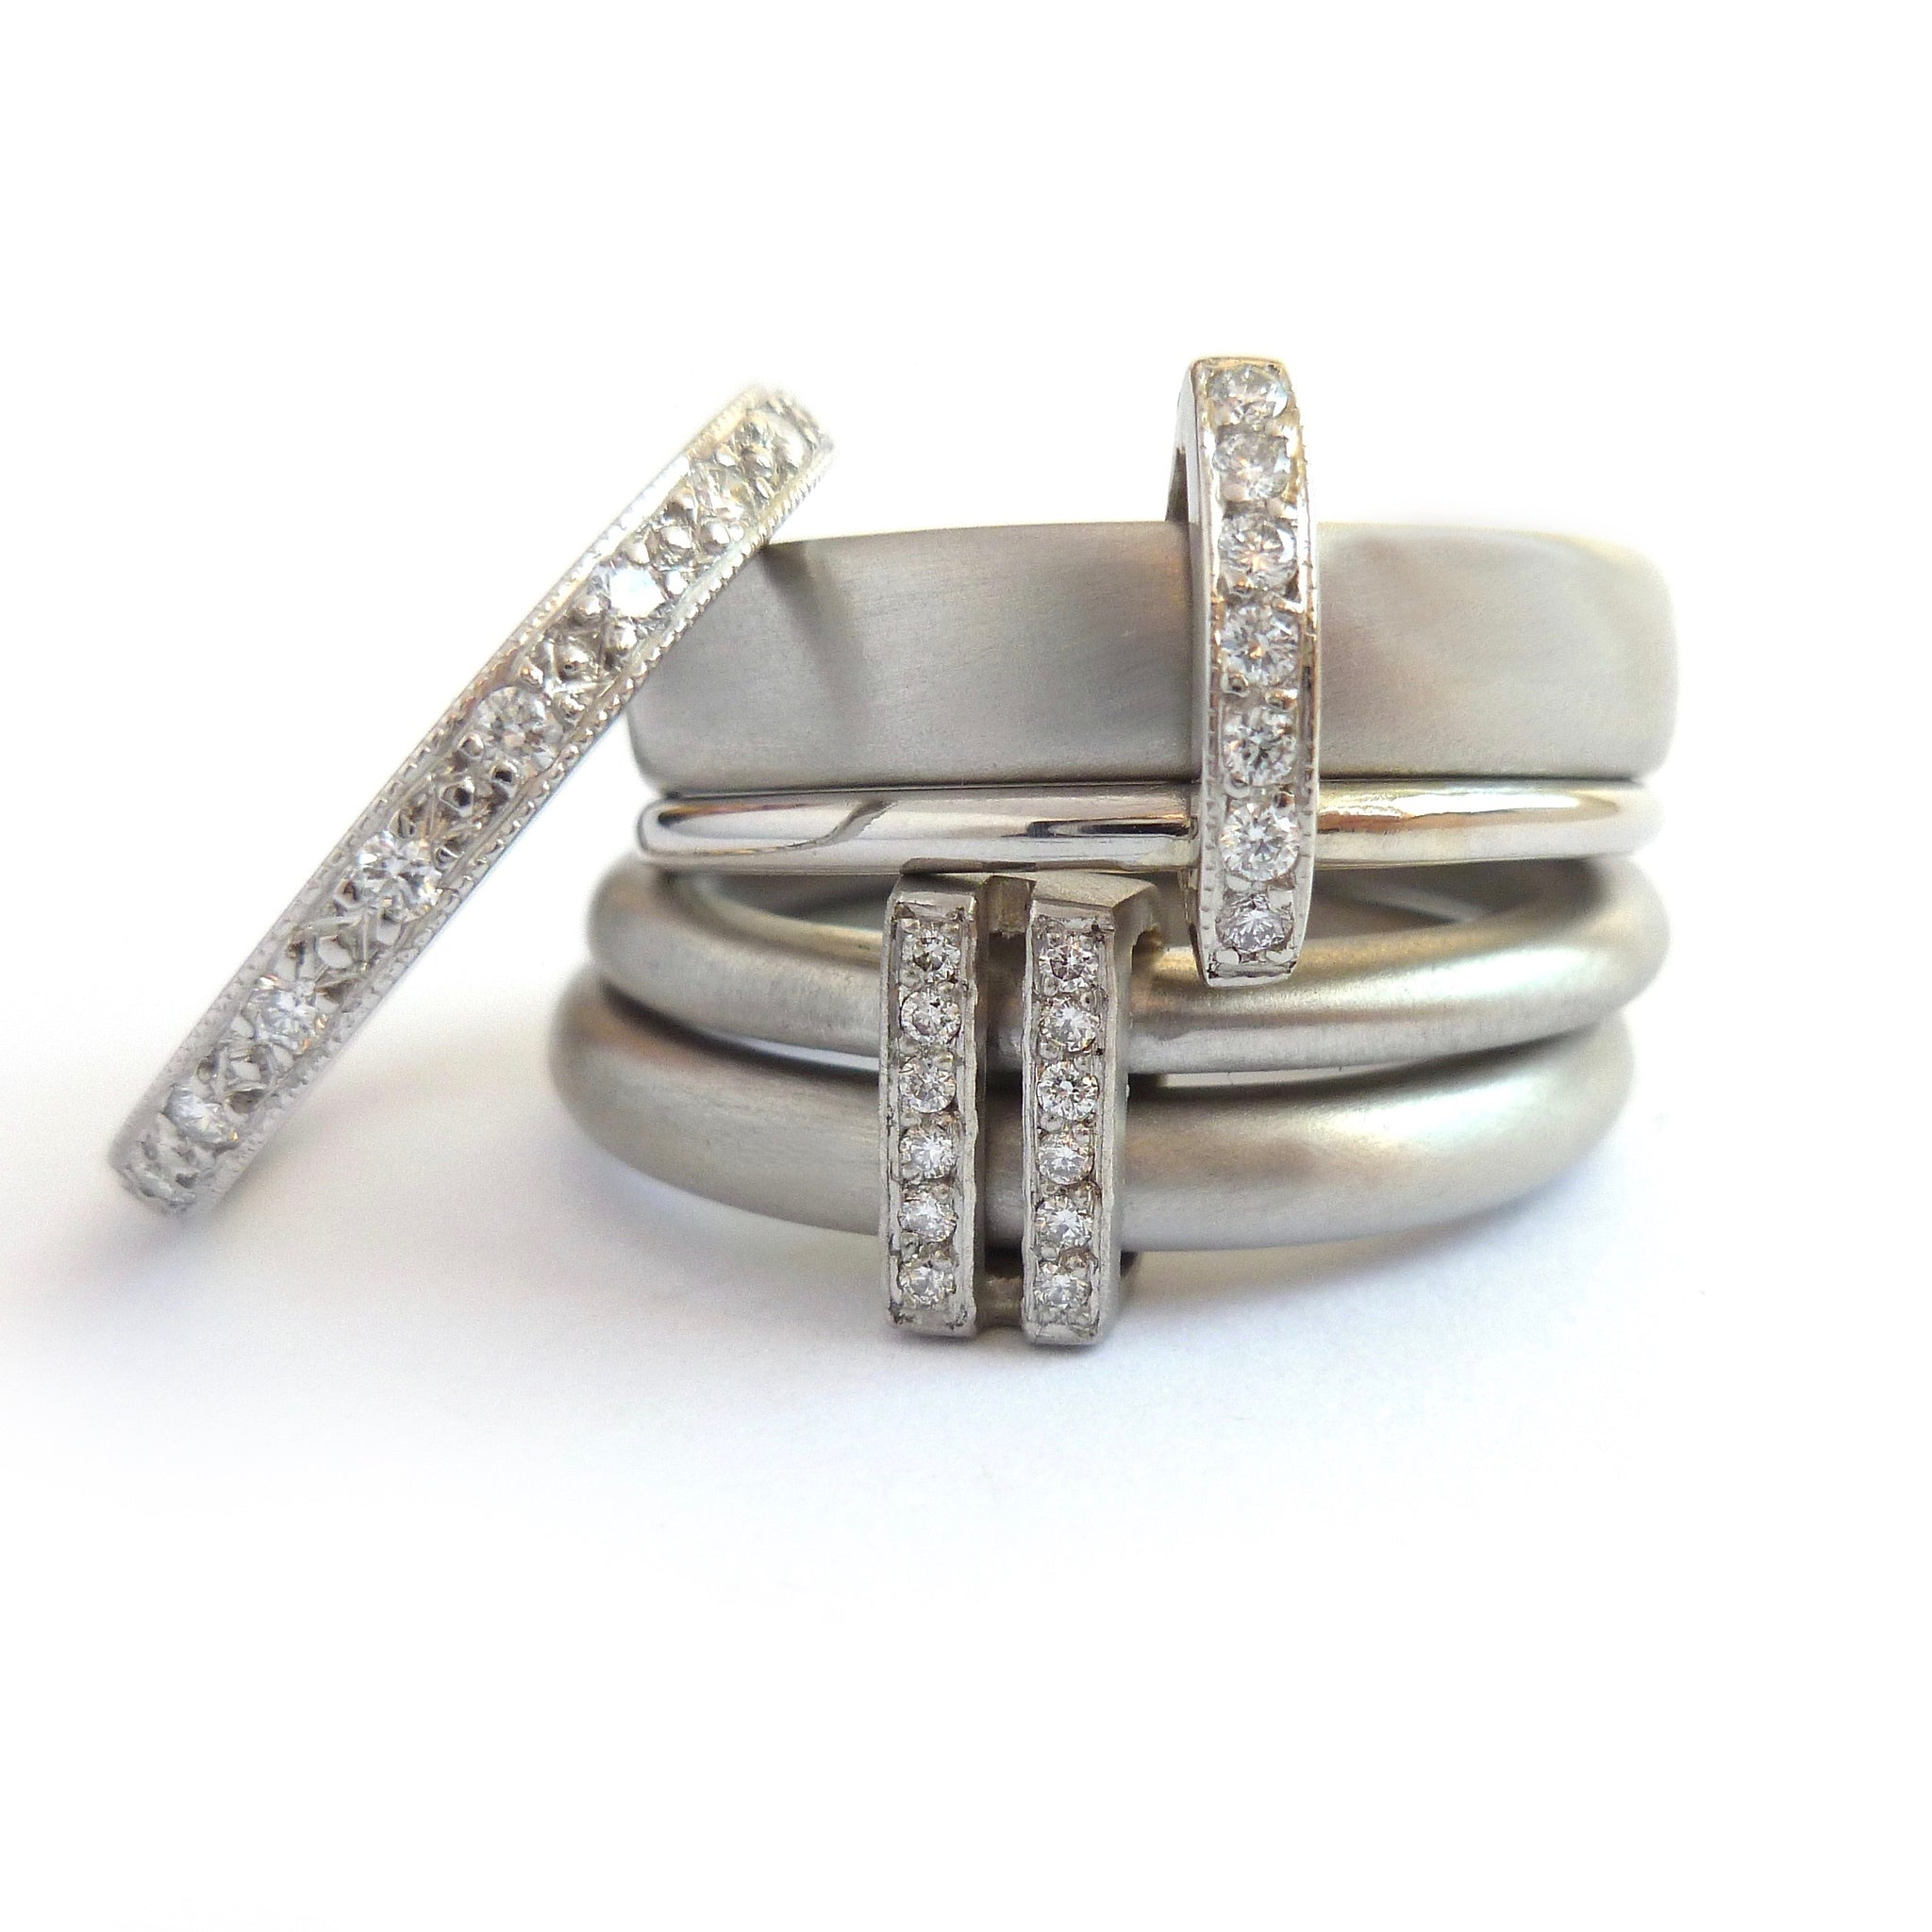 d799ef6e5 Sue Lane Contemporary Modern, Bespoke and Unique Rings and Jewellery.